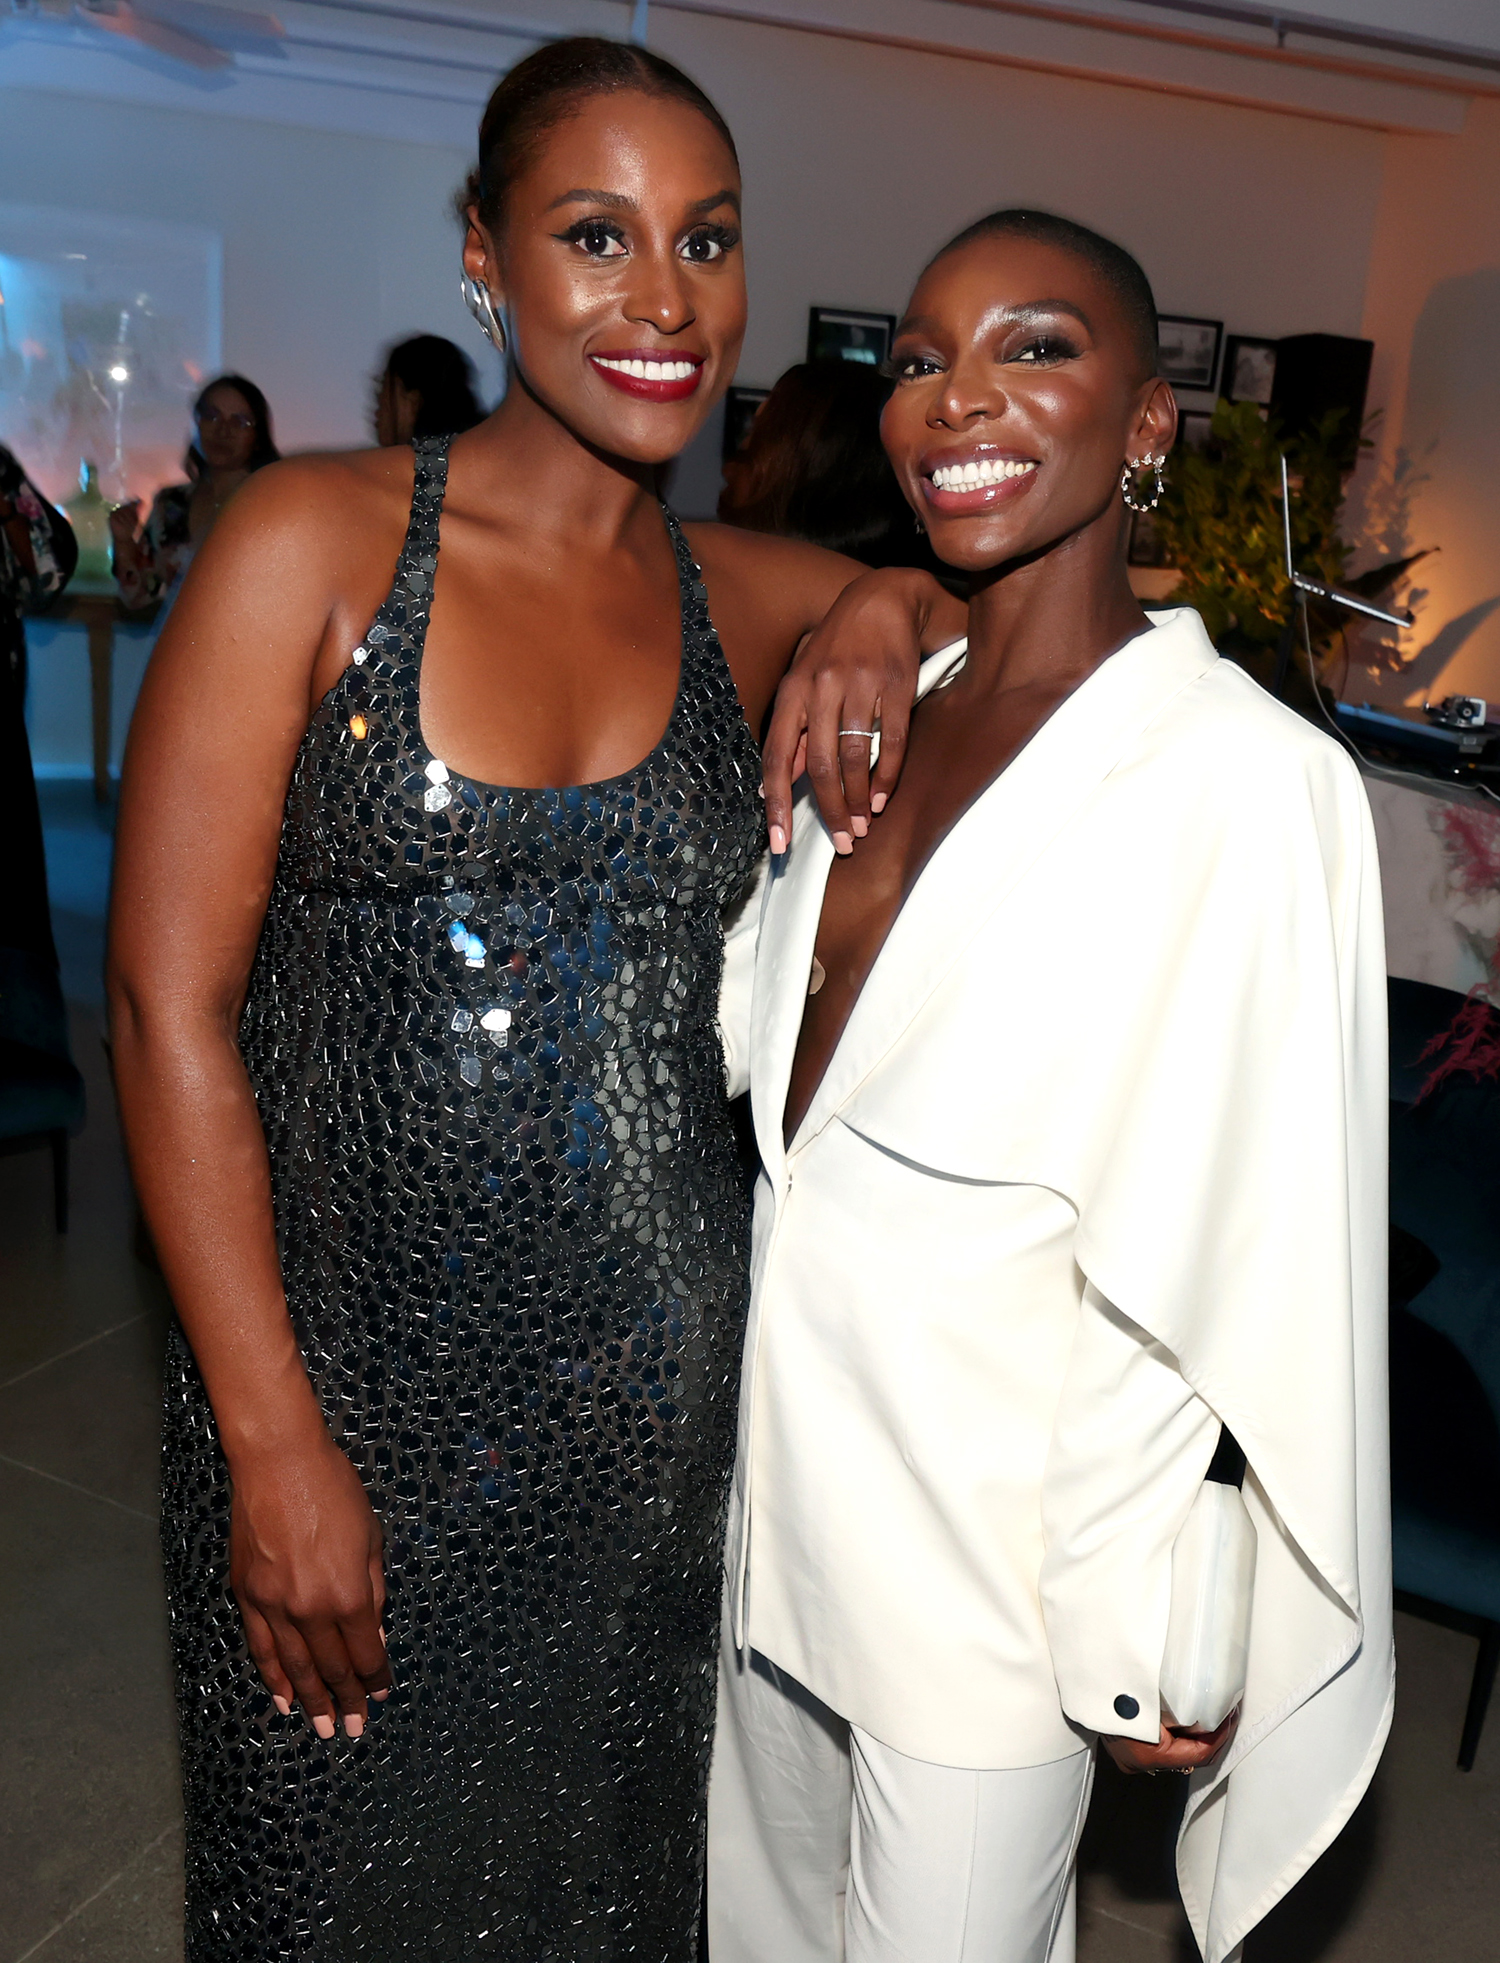 Issa Rae and Michaela Coel attend the HBO/ HBO Max Post Emmys Reception